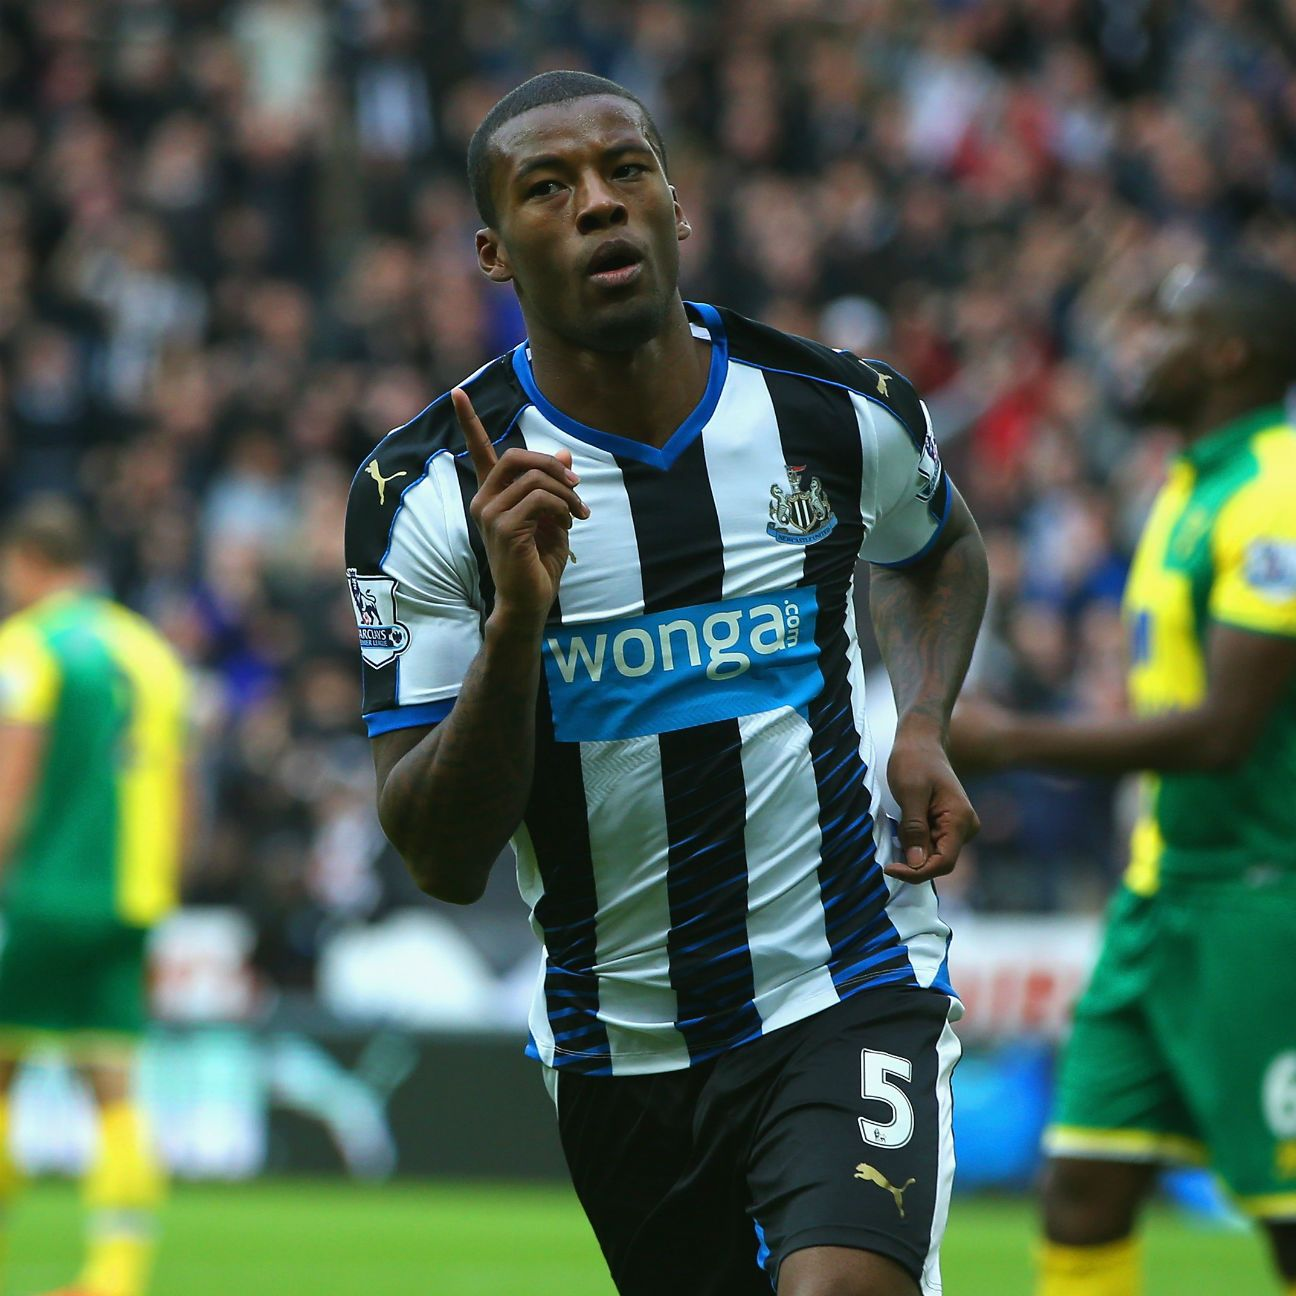 An early goal would do wonders to help Georginio Wijnaldum and Newcastle on Wednesday vs. Stoke.